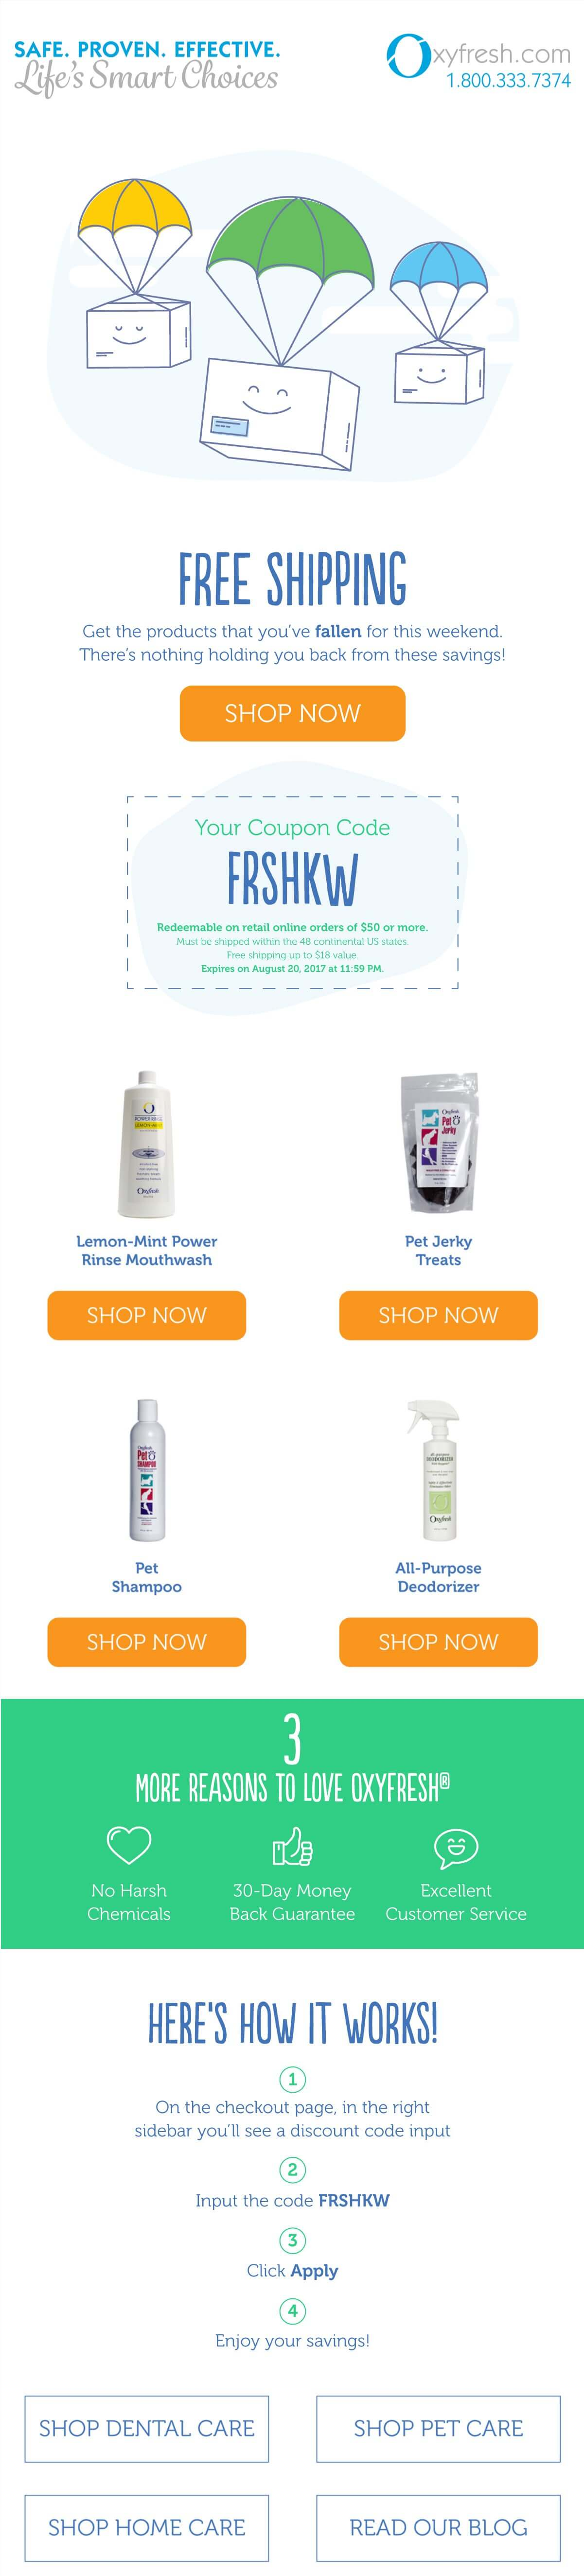 FREE SHIPPING on Oxyfresh orders over 50 ORDER TODAY